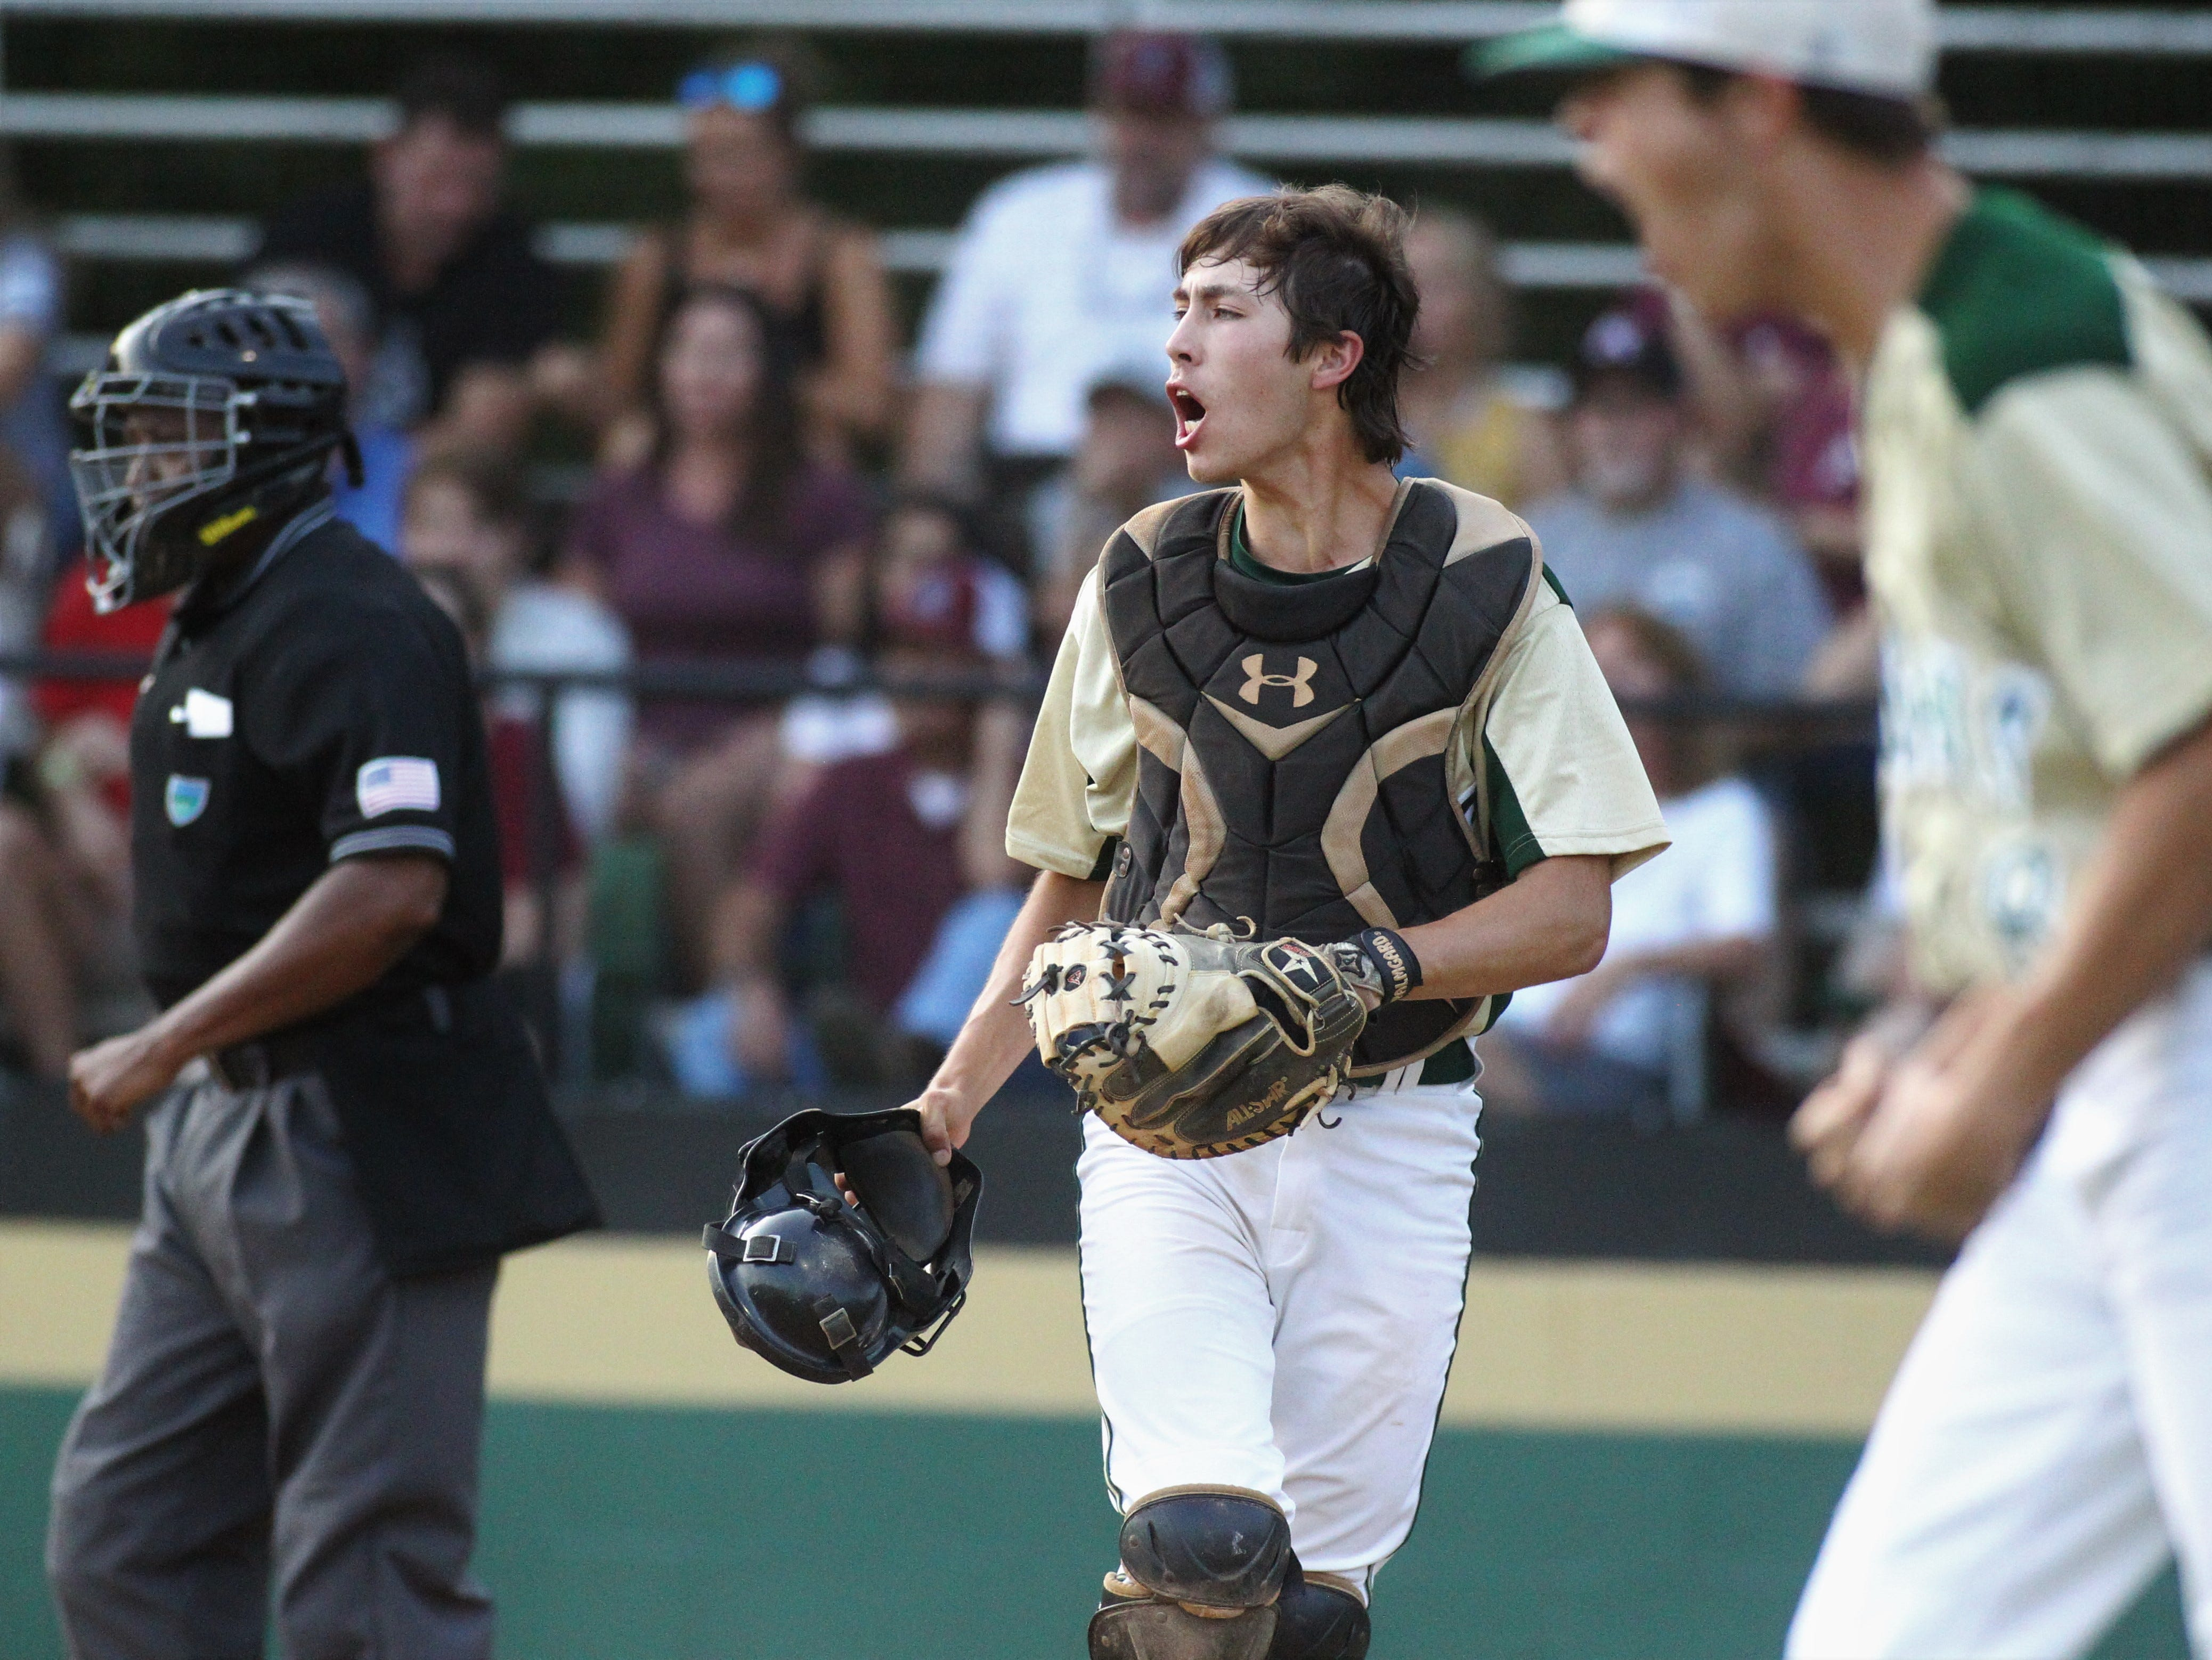 Lincoln catcher Hunter Peschl reacts to an inning-ending out as Lincoln baseball beat Chiles 5-4  in 10 innings during a District 2-8A championship game on Thursday, May 9, 2019.